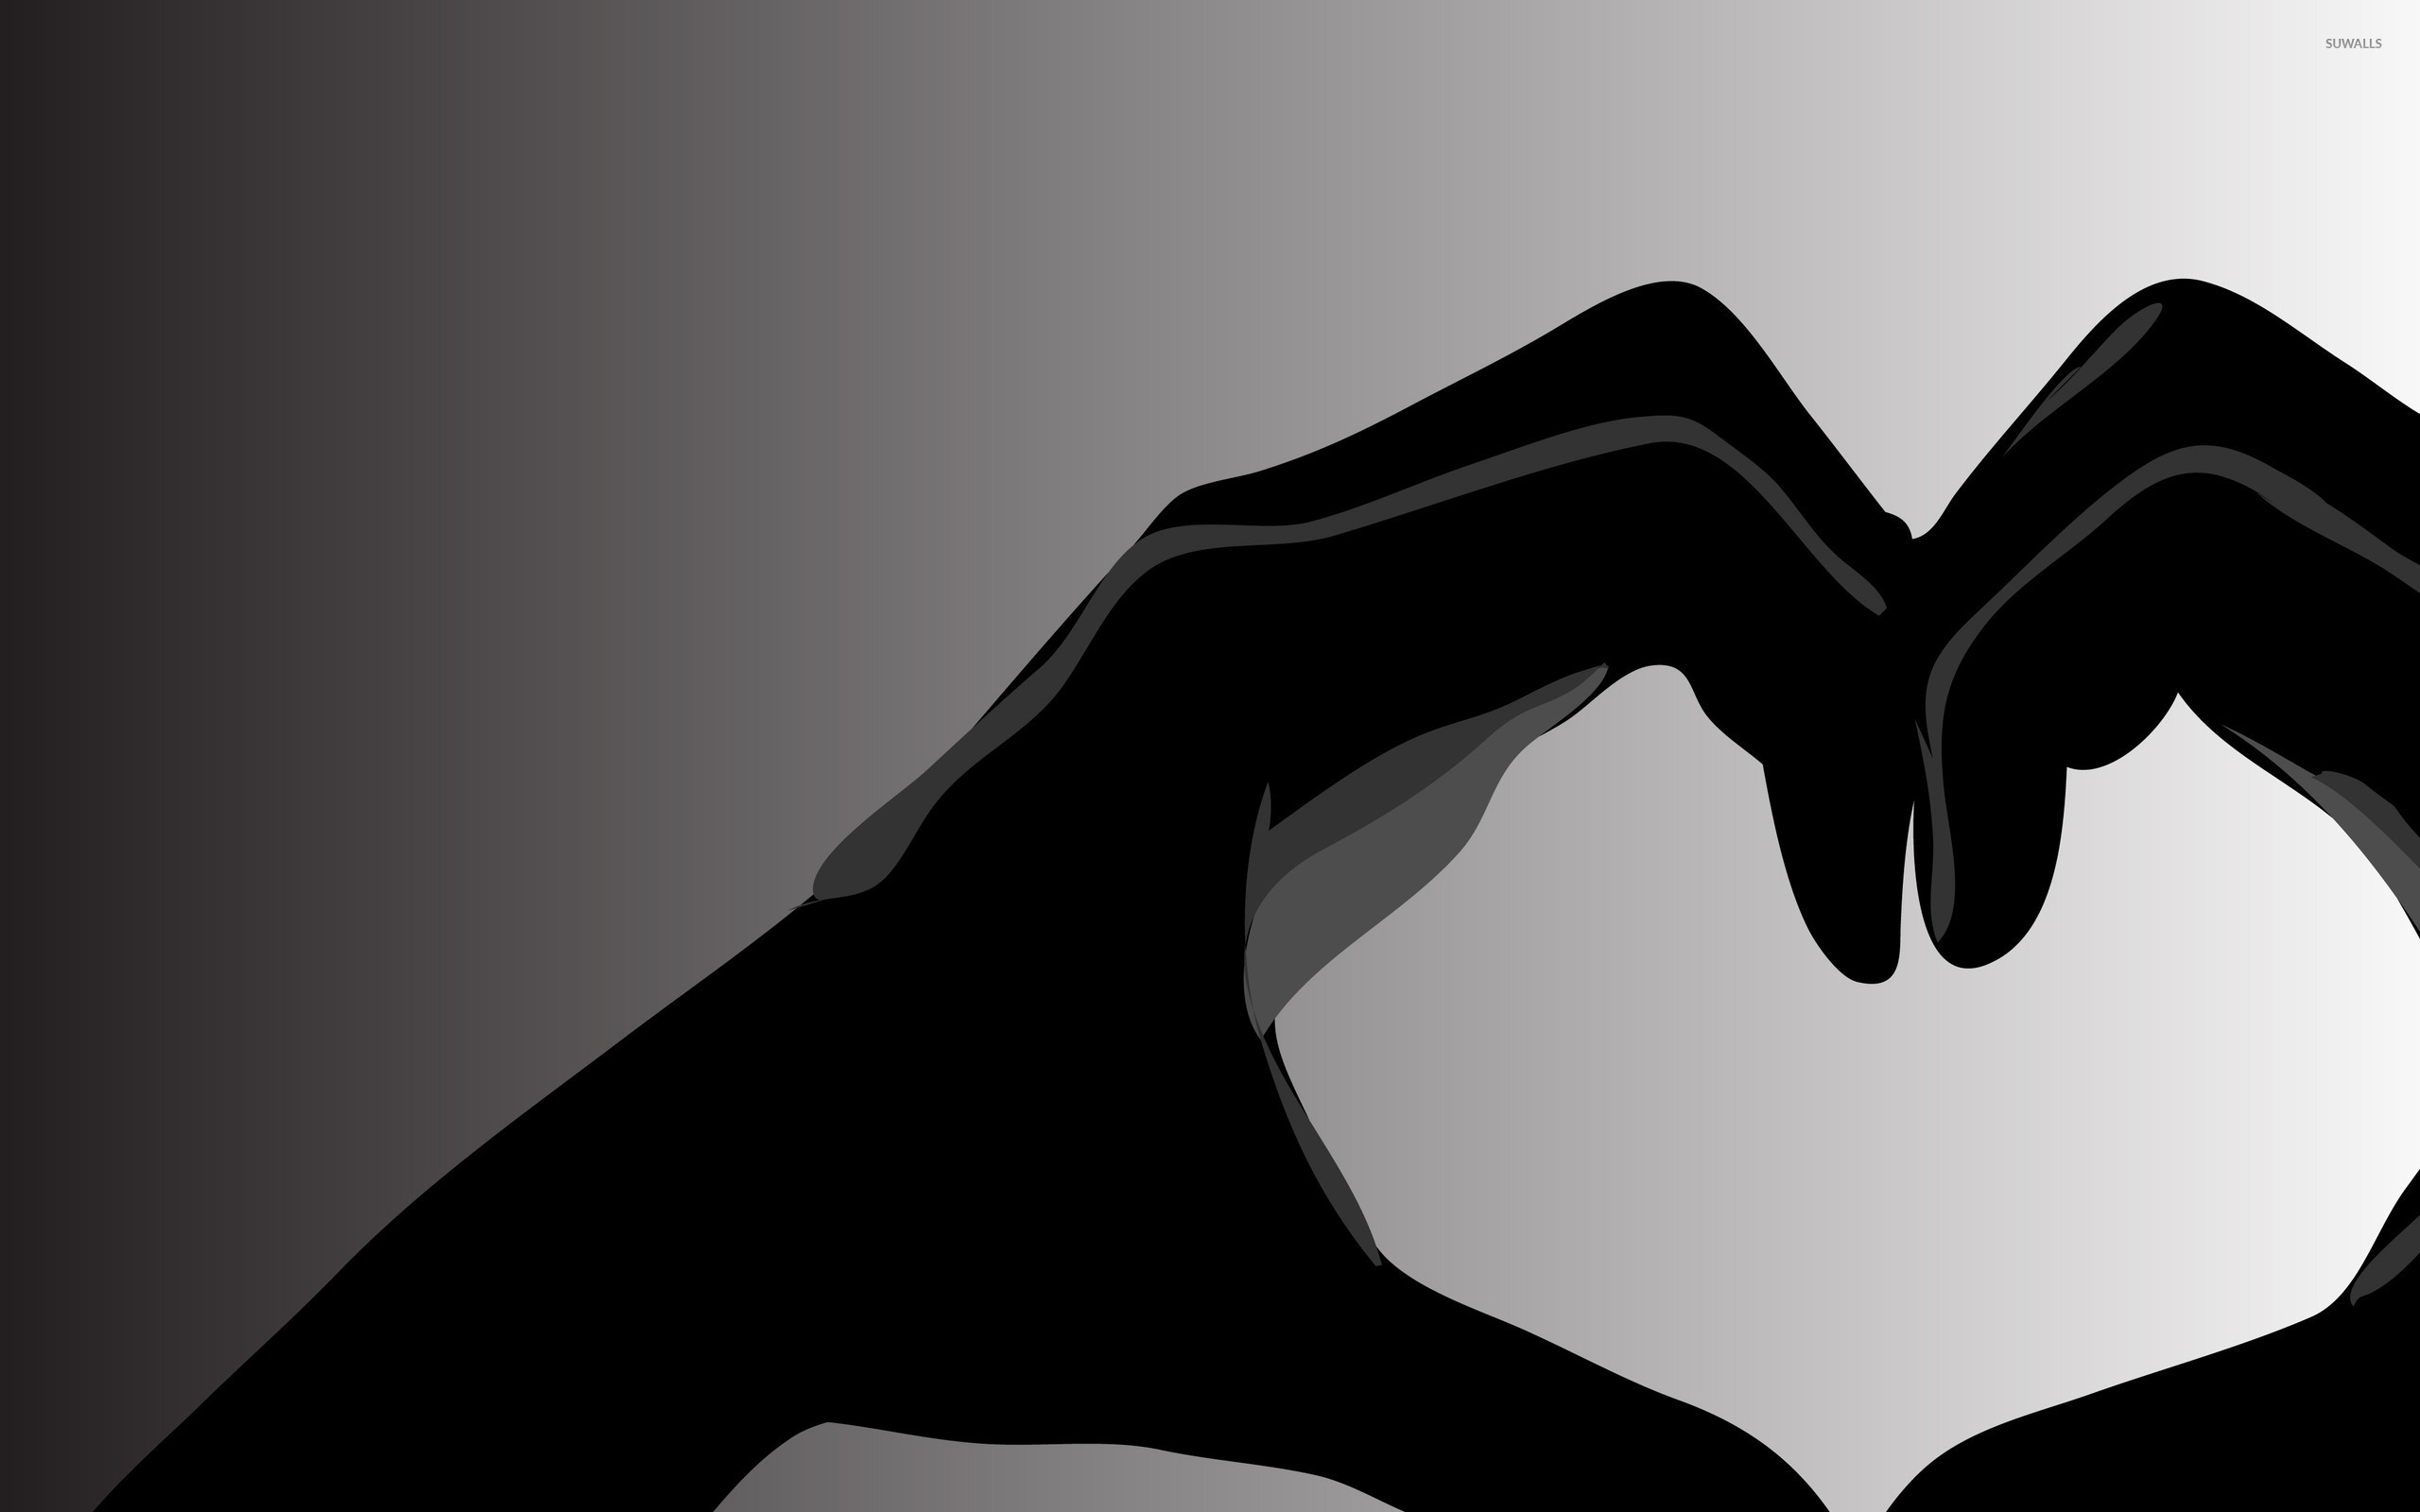 Black love wallpaper - Vector wallpapers - #45423